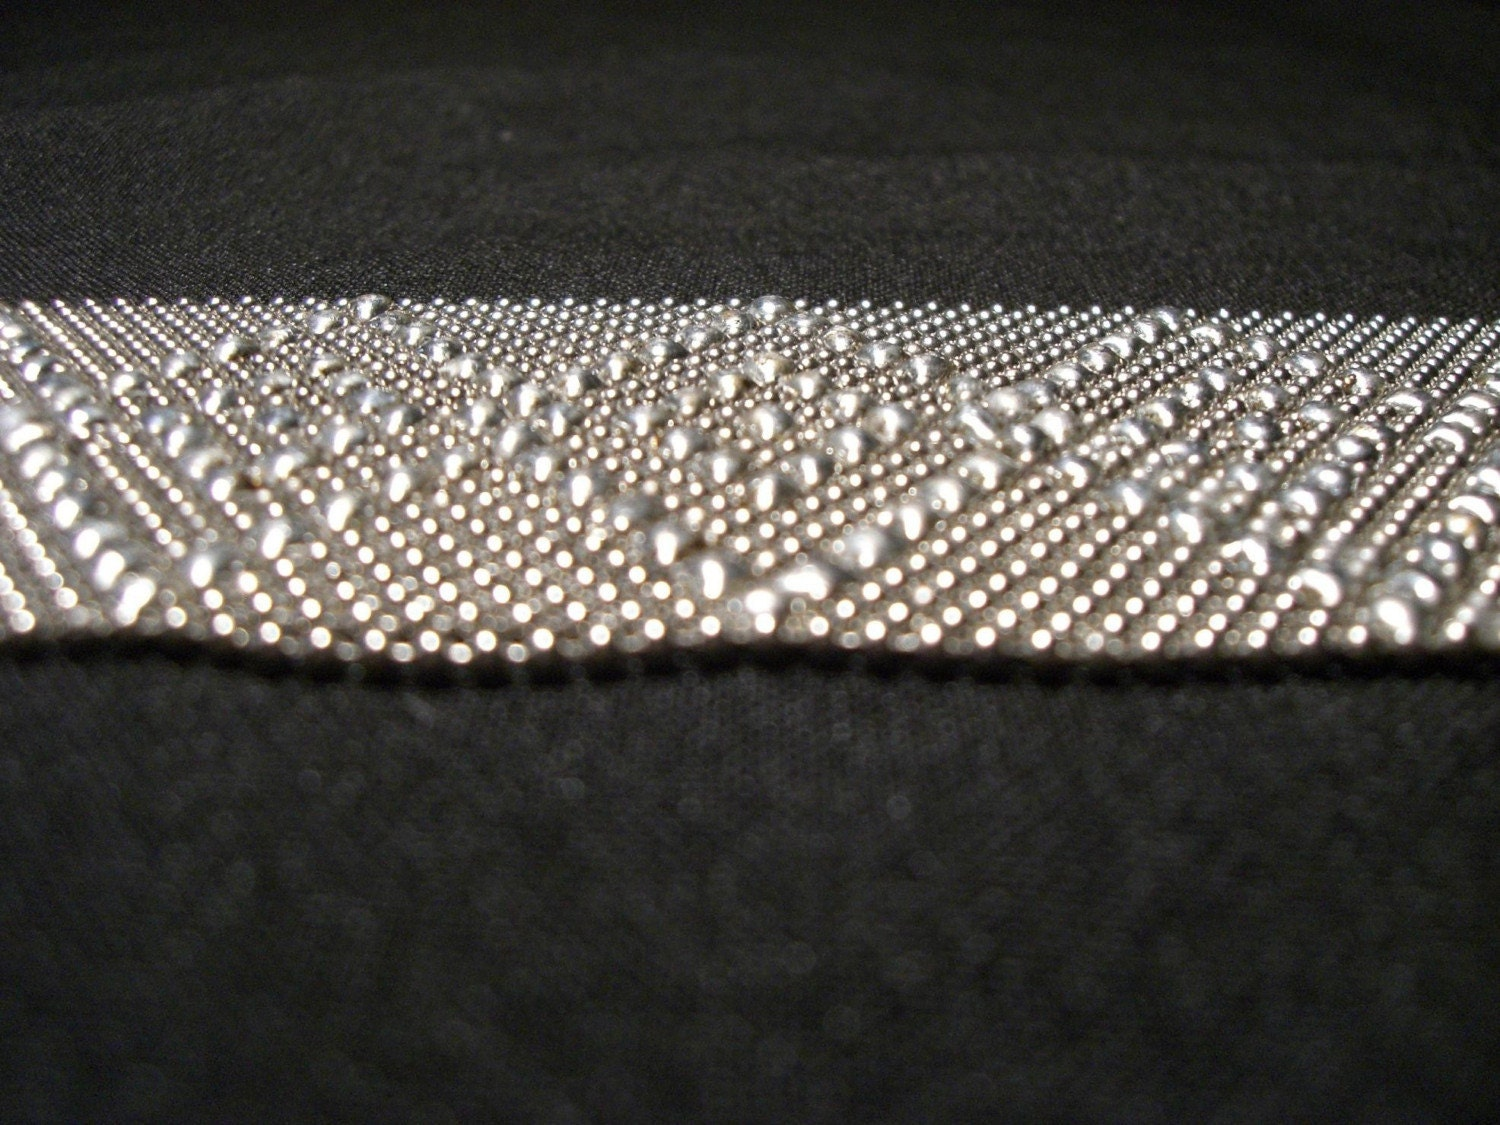 Soldered Chain Mesh Bracelet 9 by KarenOlwenDesigns on Etsy